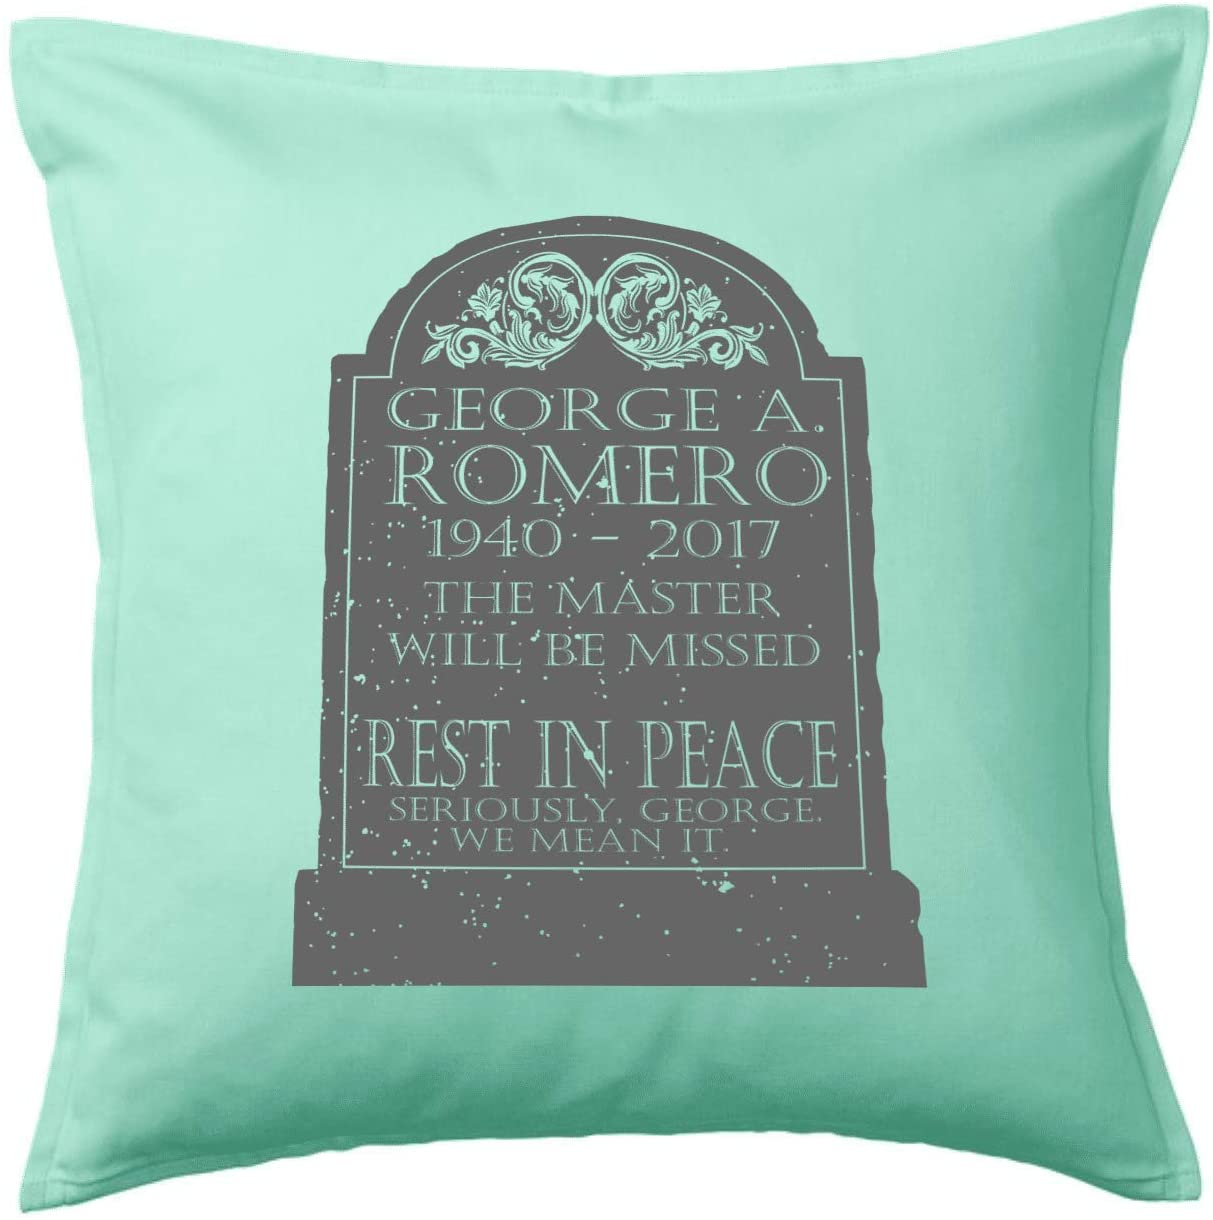 HARD EDGE DESIGN RIP Romero Light Turquoise Green Throw Pillow with Polyester Filling